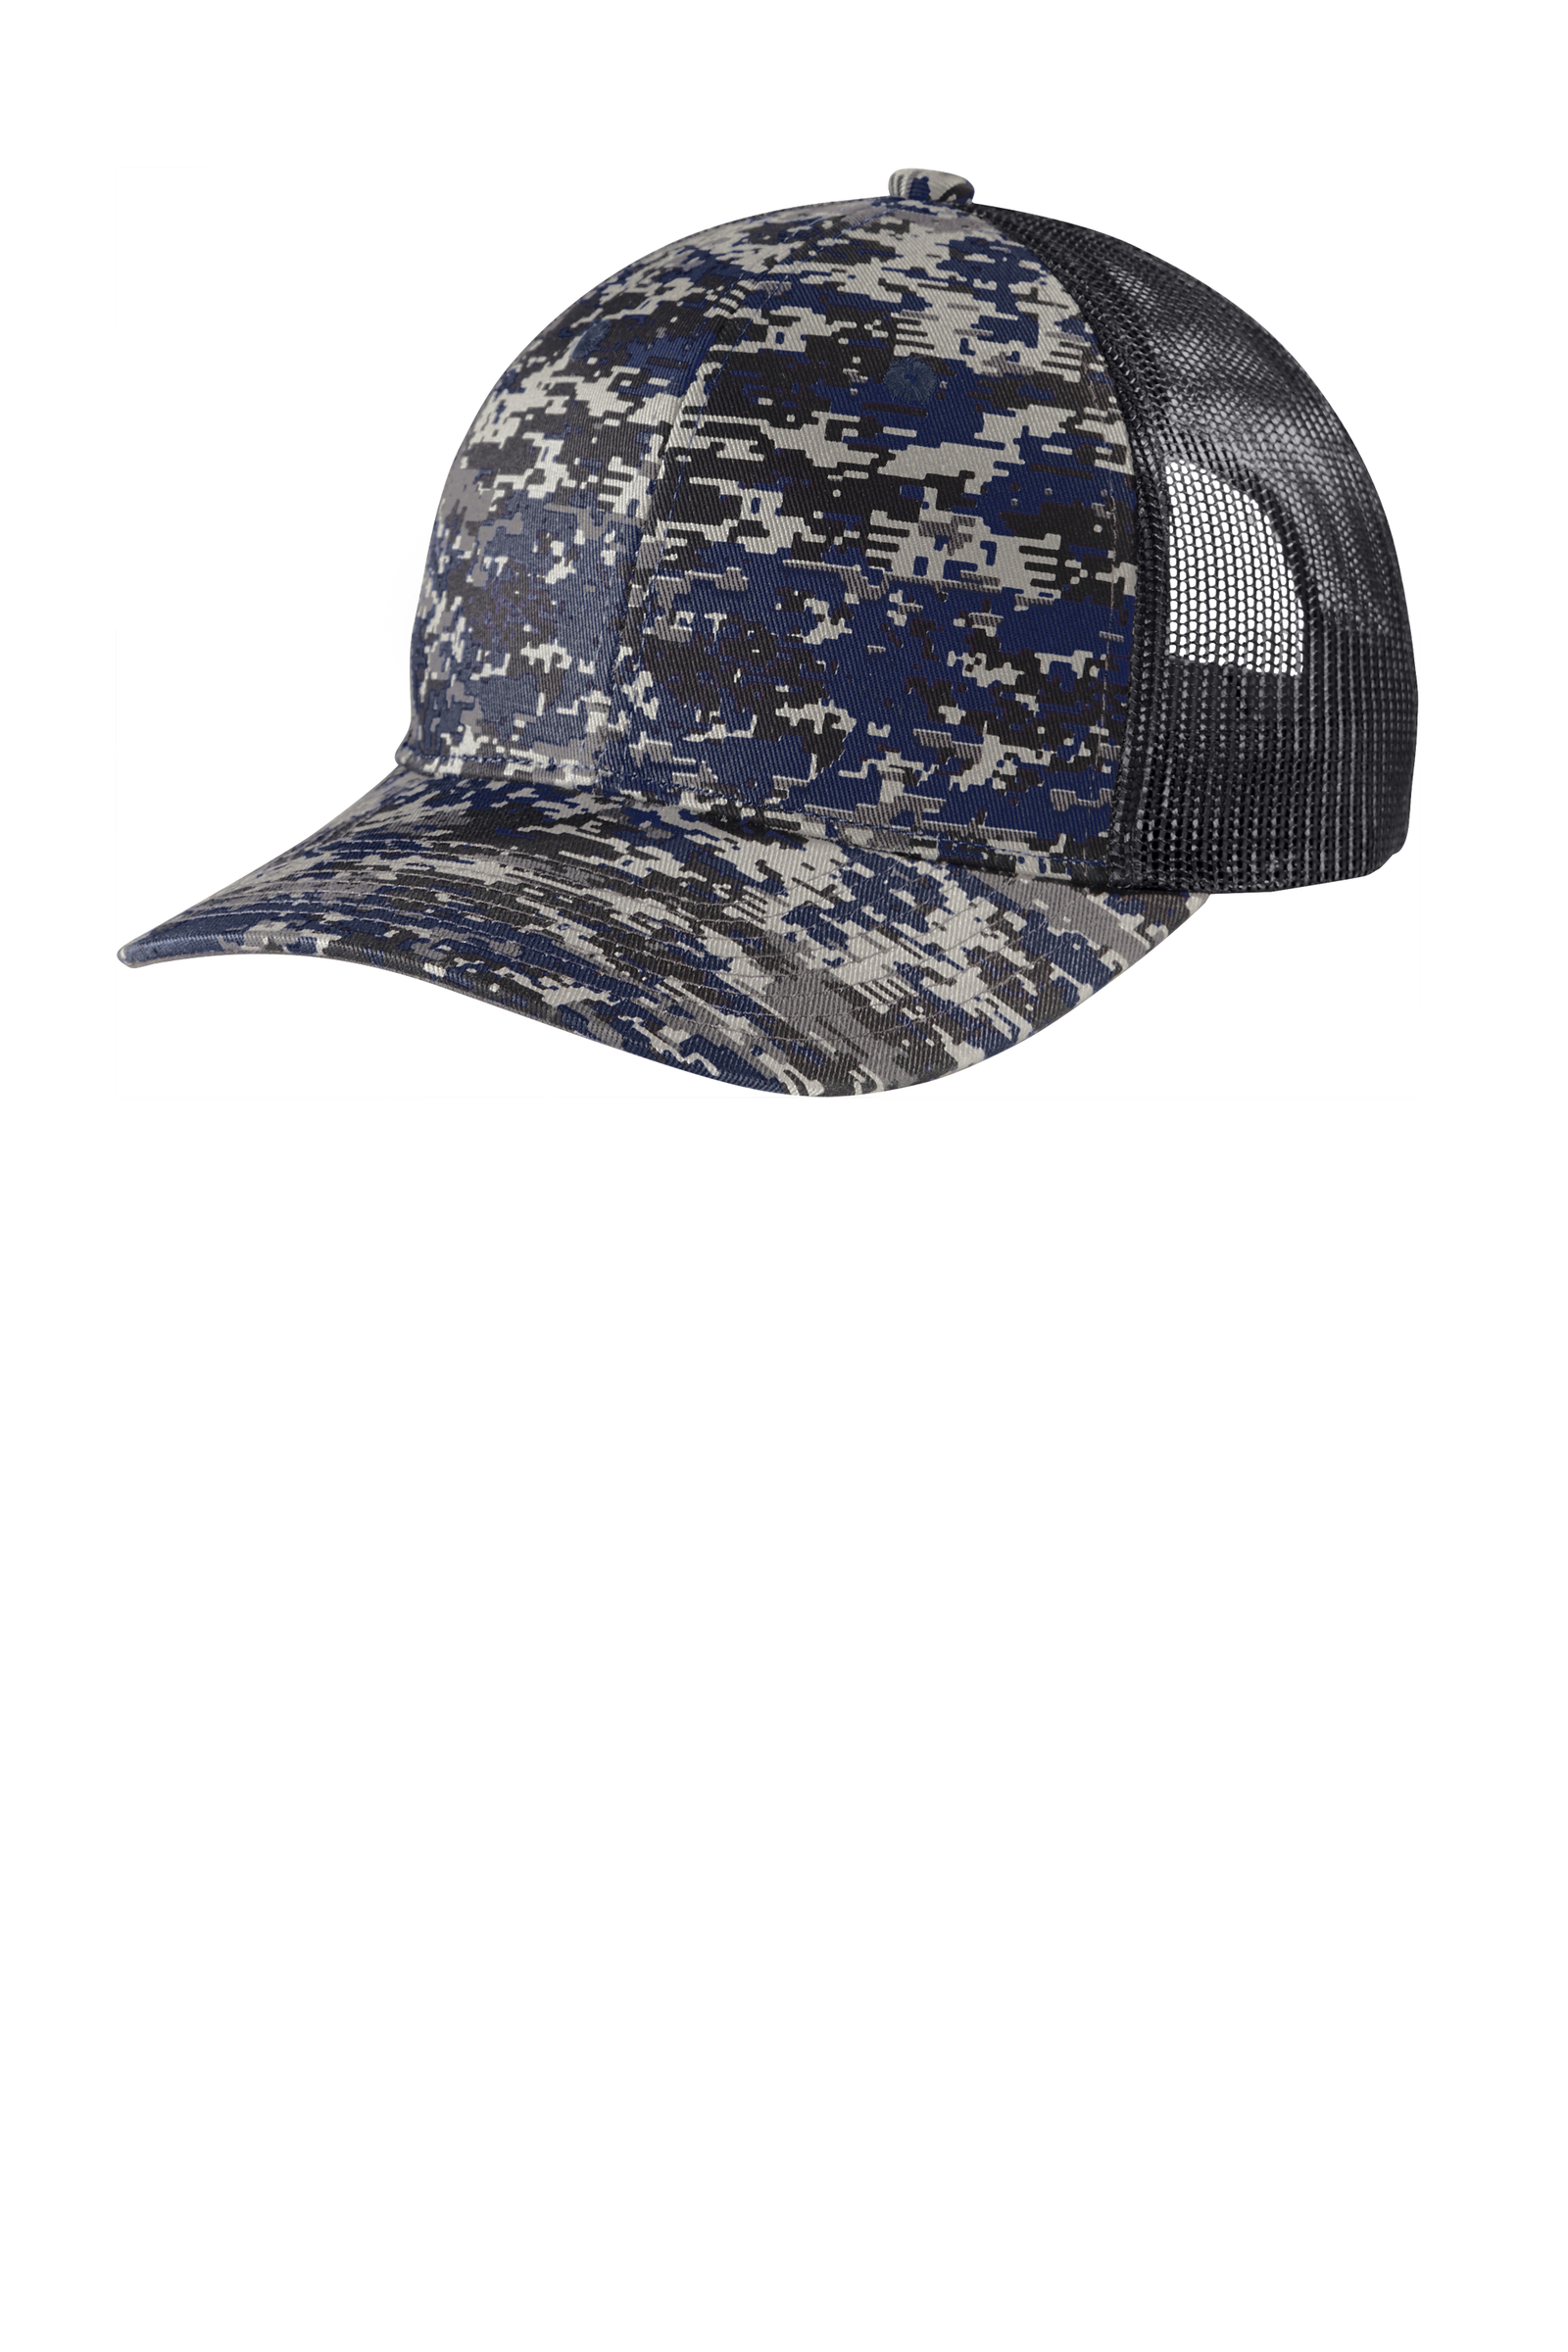 Port Authority Embroidered Digi Camo Snapback Trucker Hat